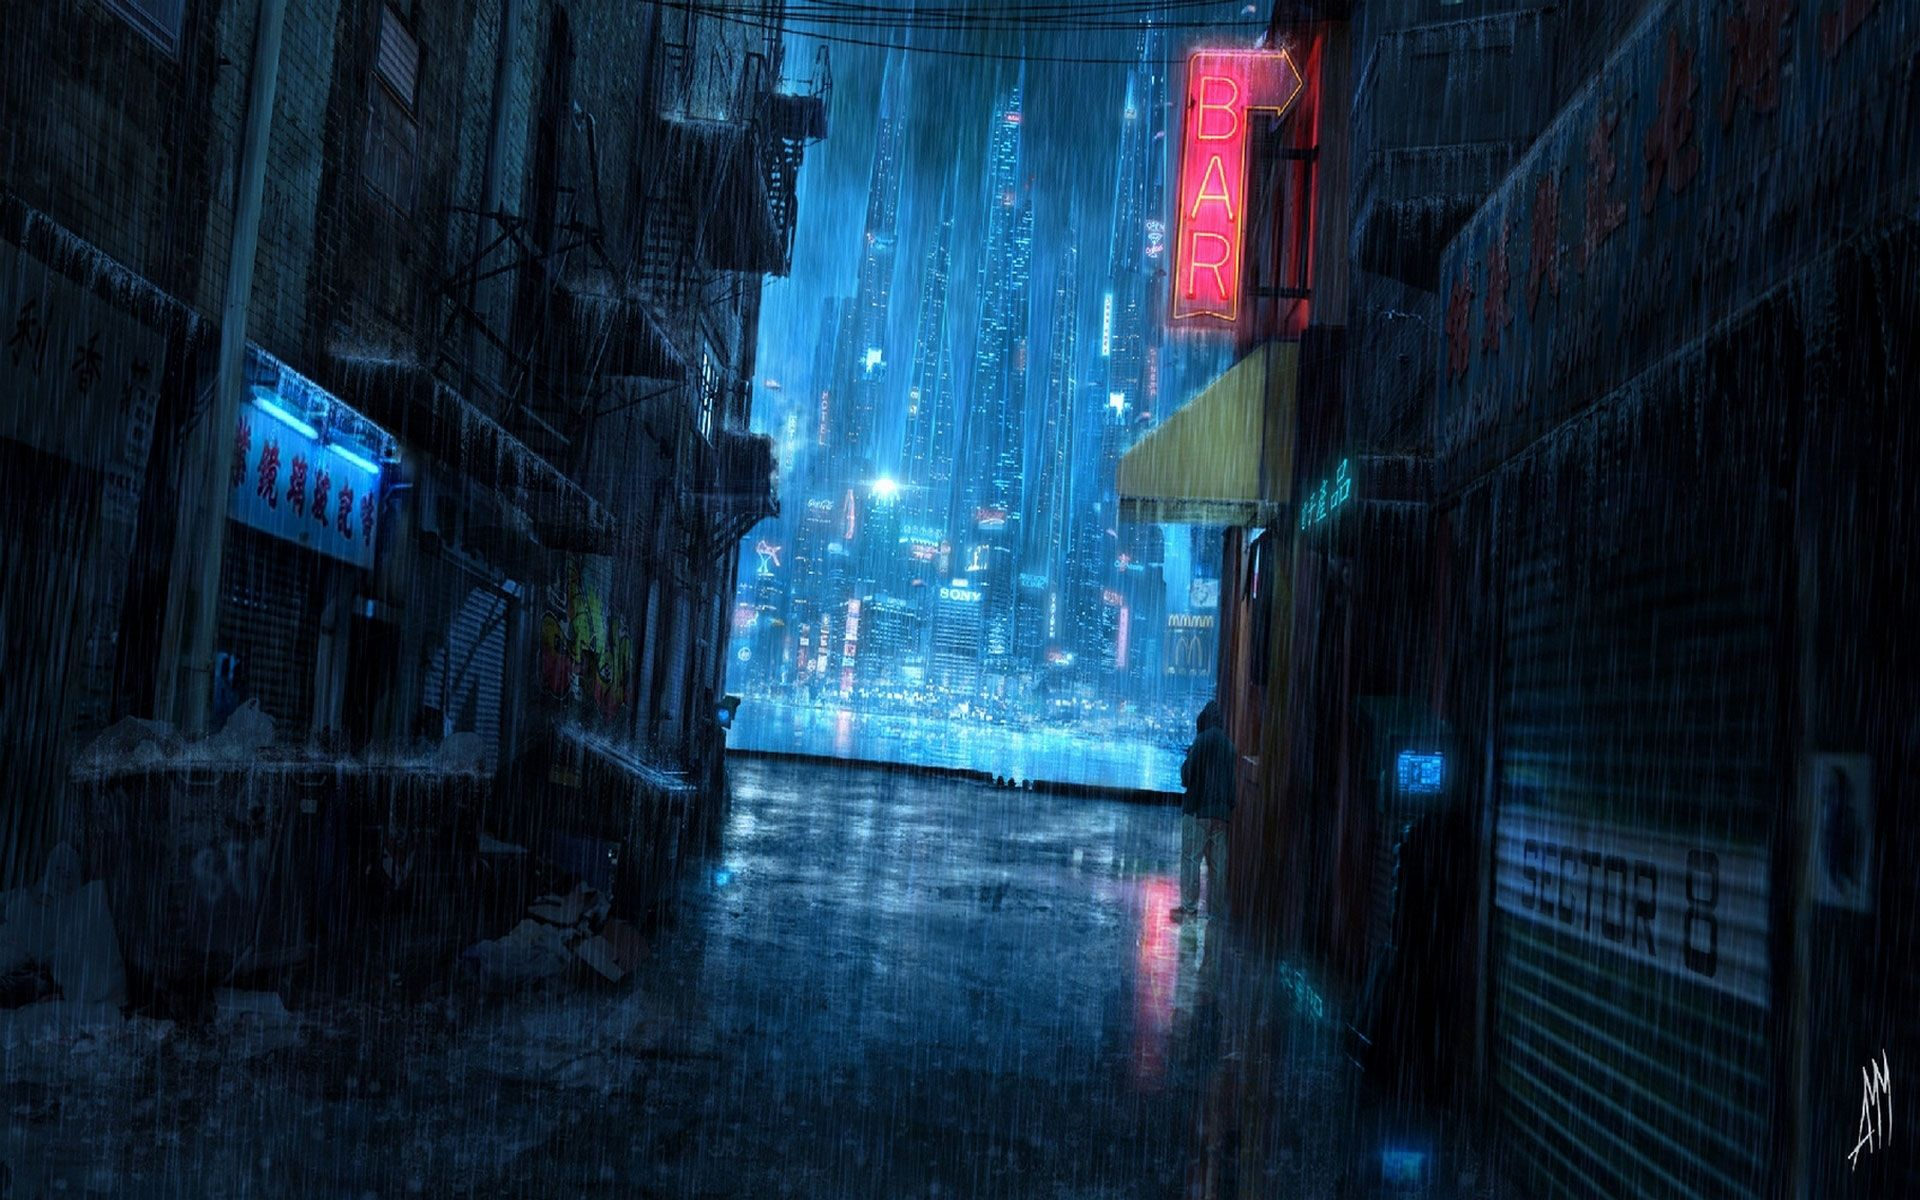 Inspiration Scene Reflective Shine With Blues And Neon Red Accent Lglimitlessdesign Contest Cyberpunk City Urban Fantasy Art Rainy Night